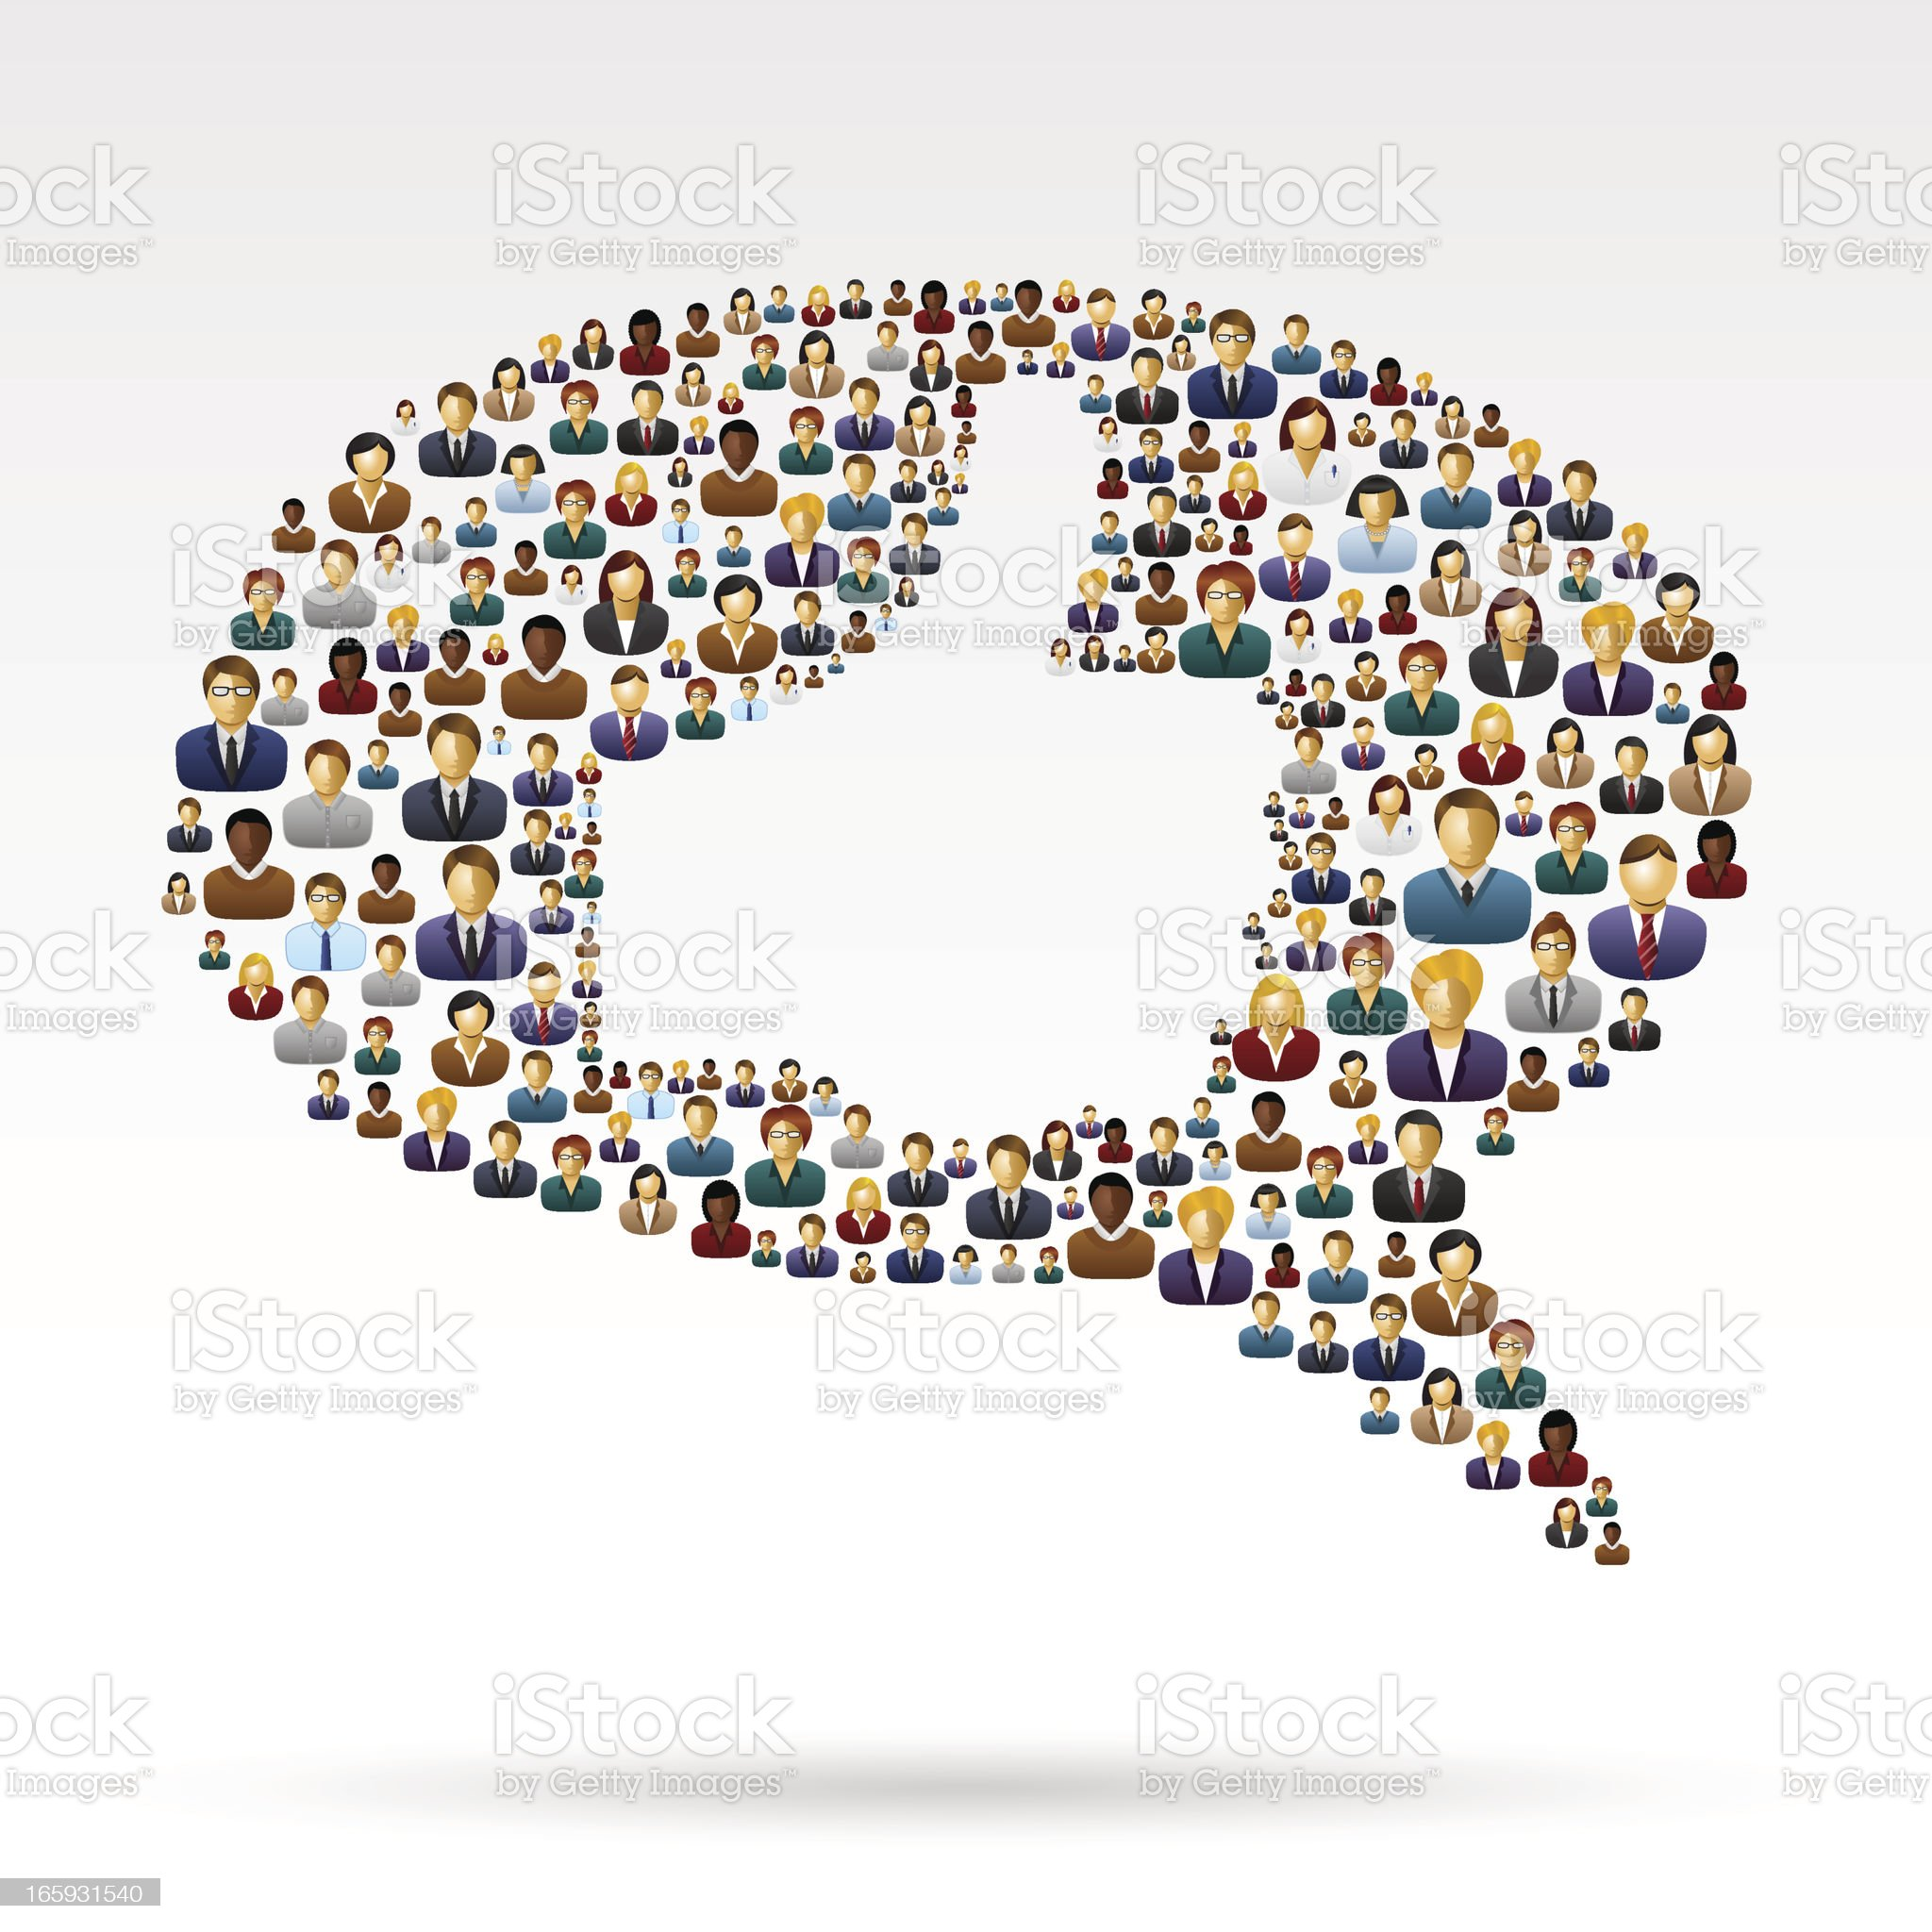 People Bubble with thumb up royalty-free stock vector art